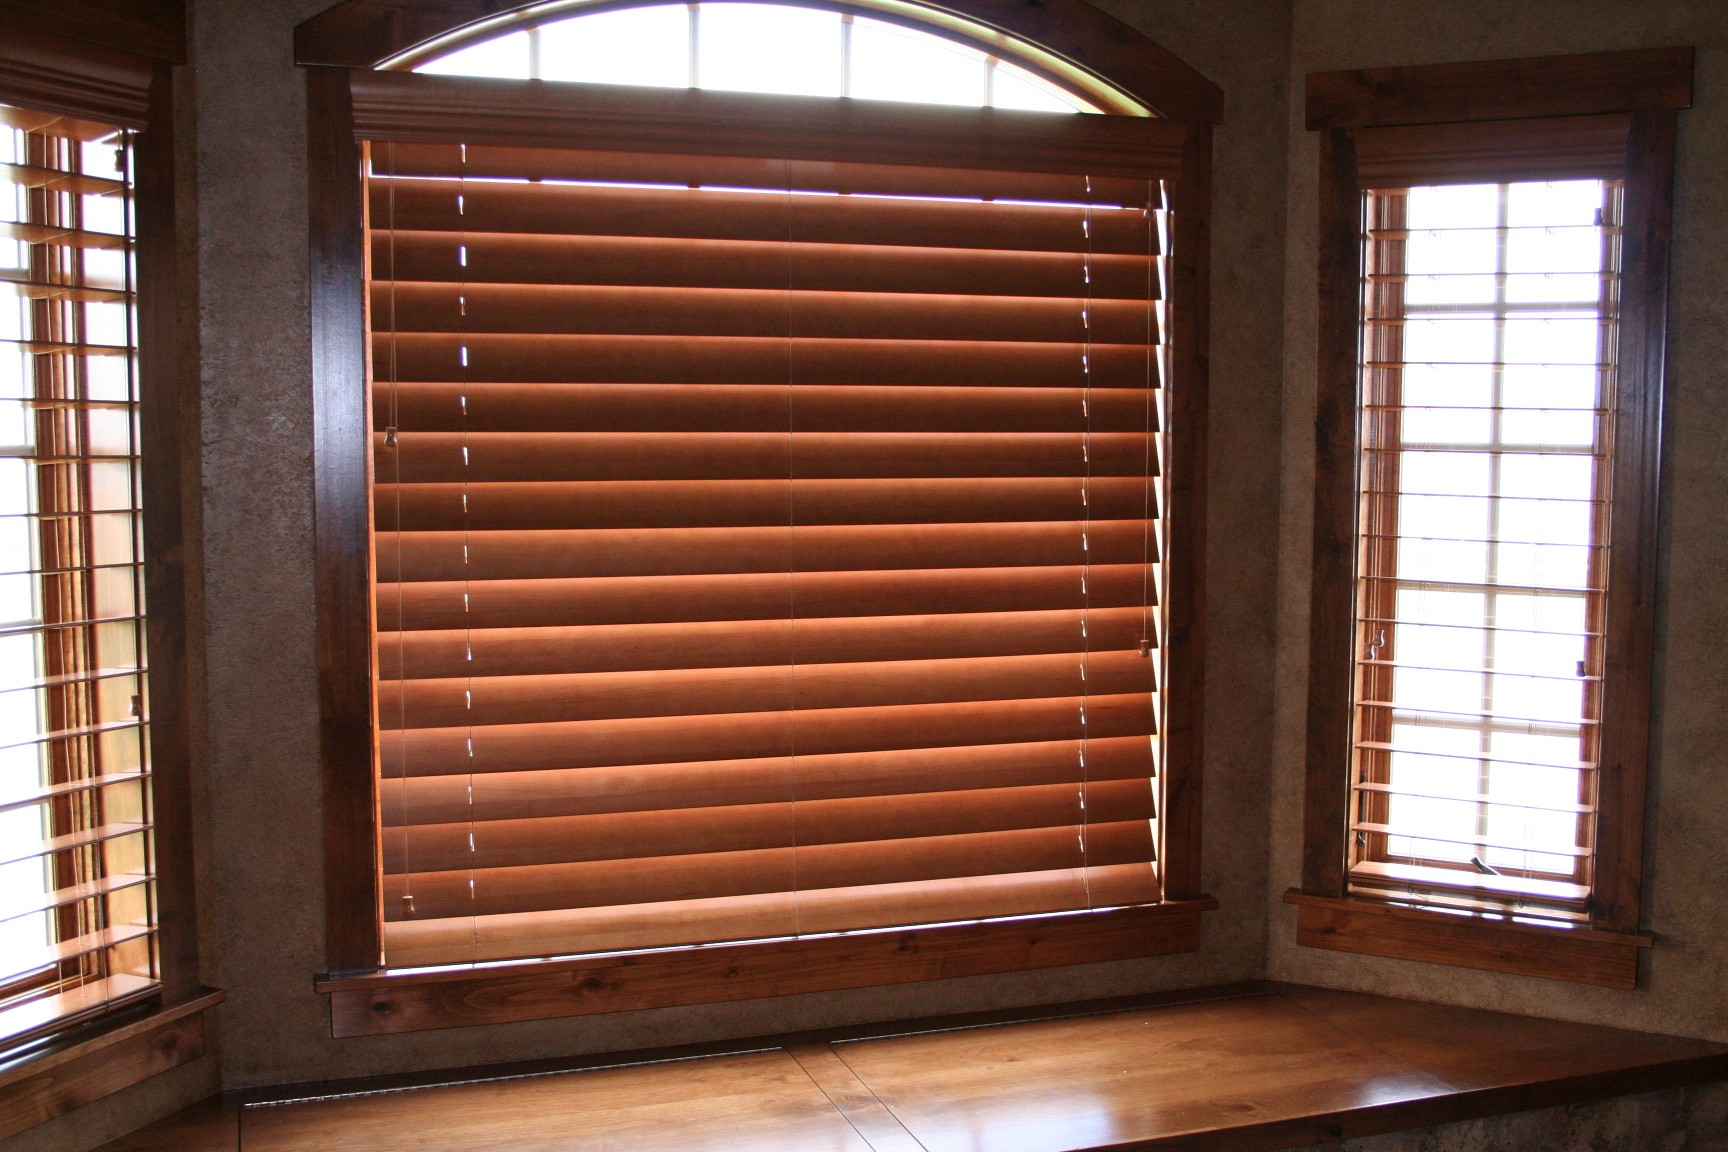 wooden window with horizontal wood bali blinds for home interior design ideas